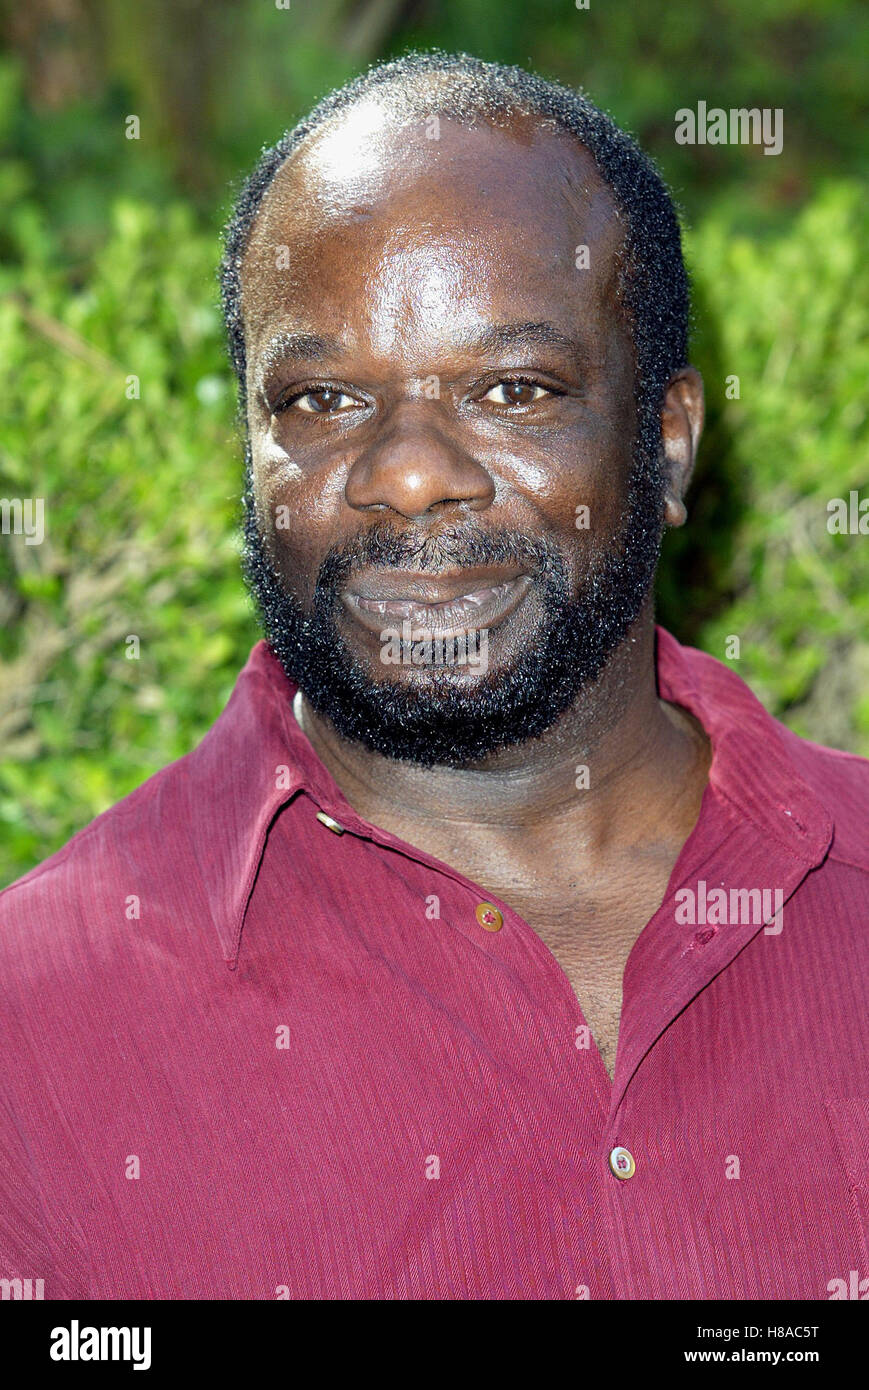 joseph marcell the boy who harnessed the windjoseph marcell wife, joseph marcell death, joseph marcell, joseph marcell net worth, joseph marcell age, joseph marcell dead, joseph marcell eastenders, joseph marcell instagram, joseph marcell imdb, joseph marcell death in paradise, joseph marcell died, joseph marcell movies, joseph marcell filmes, joseph marcell fresh prince, joseph marcell the boy who harnessed the wind, joseph marcell interview, joseph marcell wiki, joseph marcell height, joseph marcell netflix, joseph marcell wikipedia